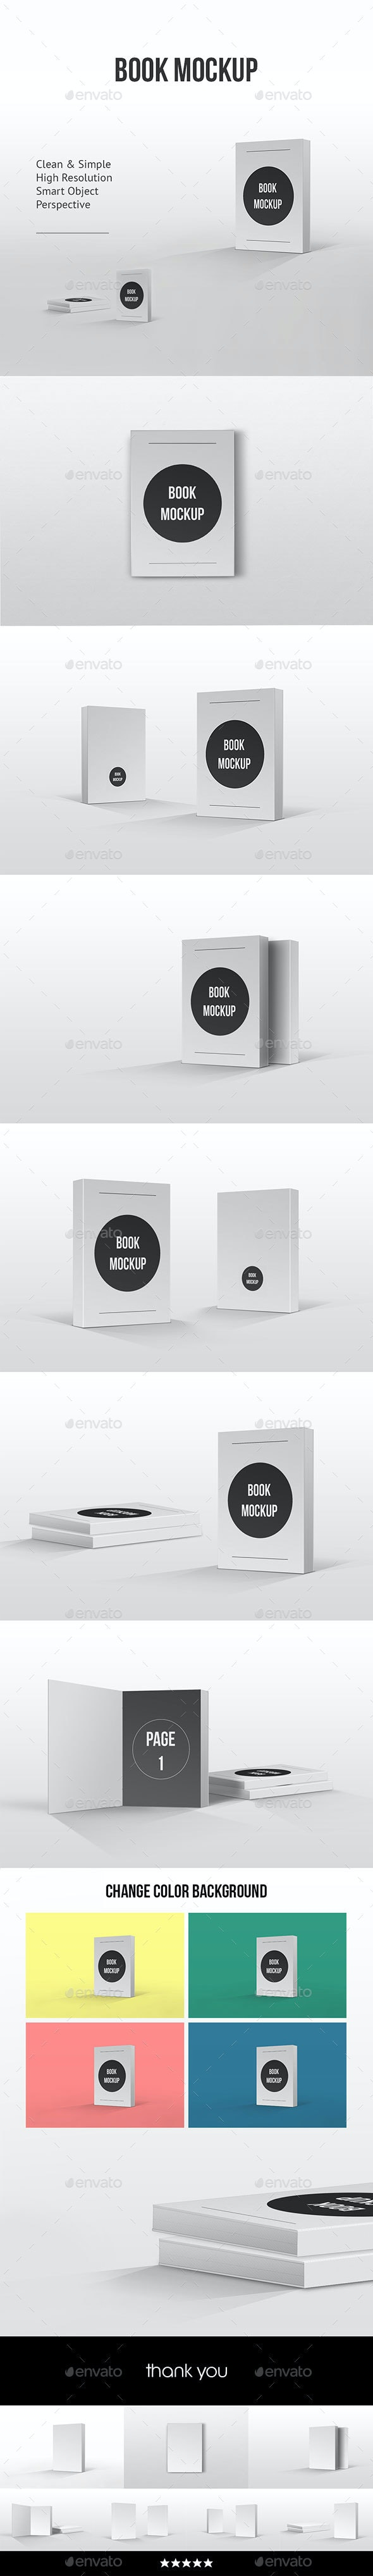 Book Mockup Clean - Books Print